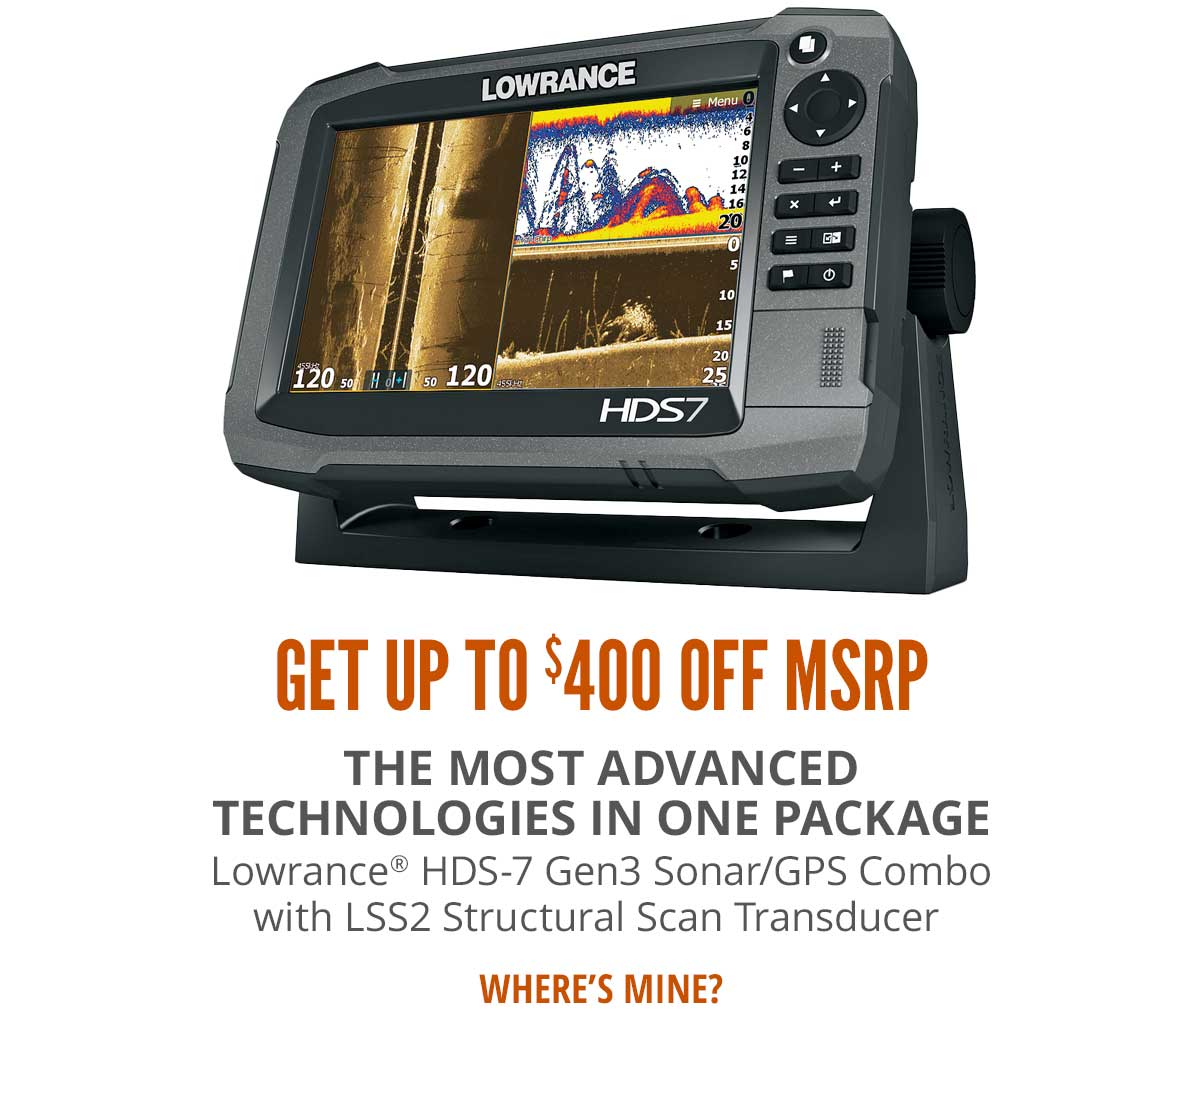 Get Up to $400 Off MSRP On Lowrance HDS-7 Gen3 Sonar/GPS Combo with LSS2 Structural Scan Transducer